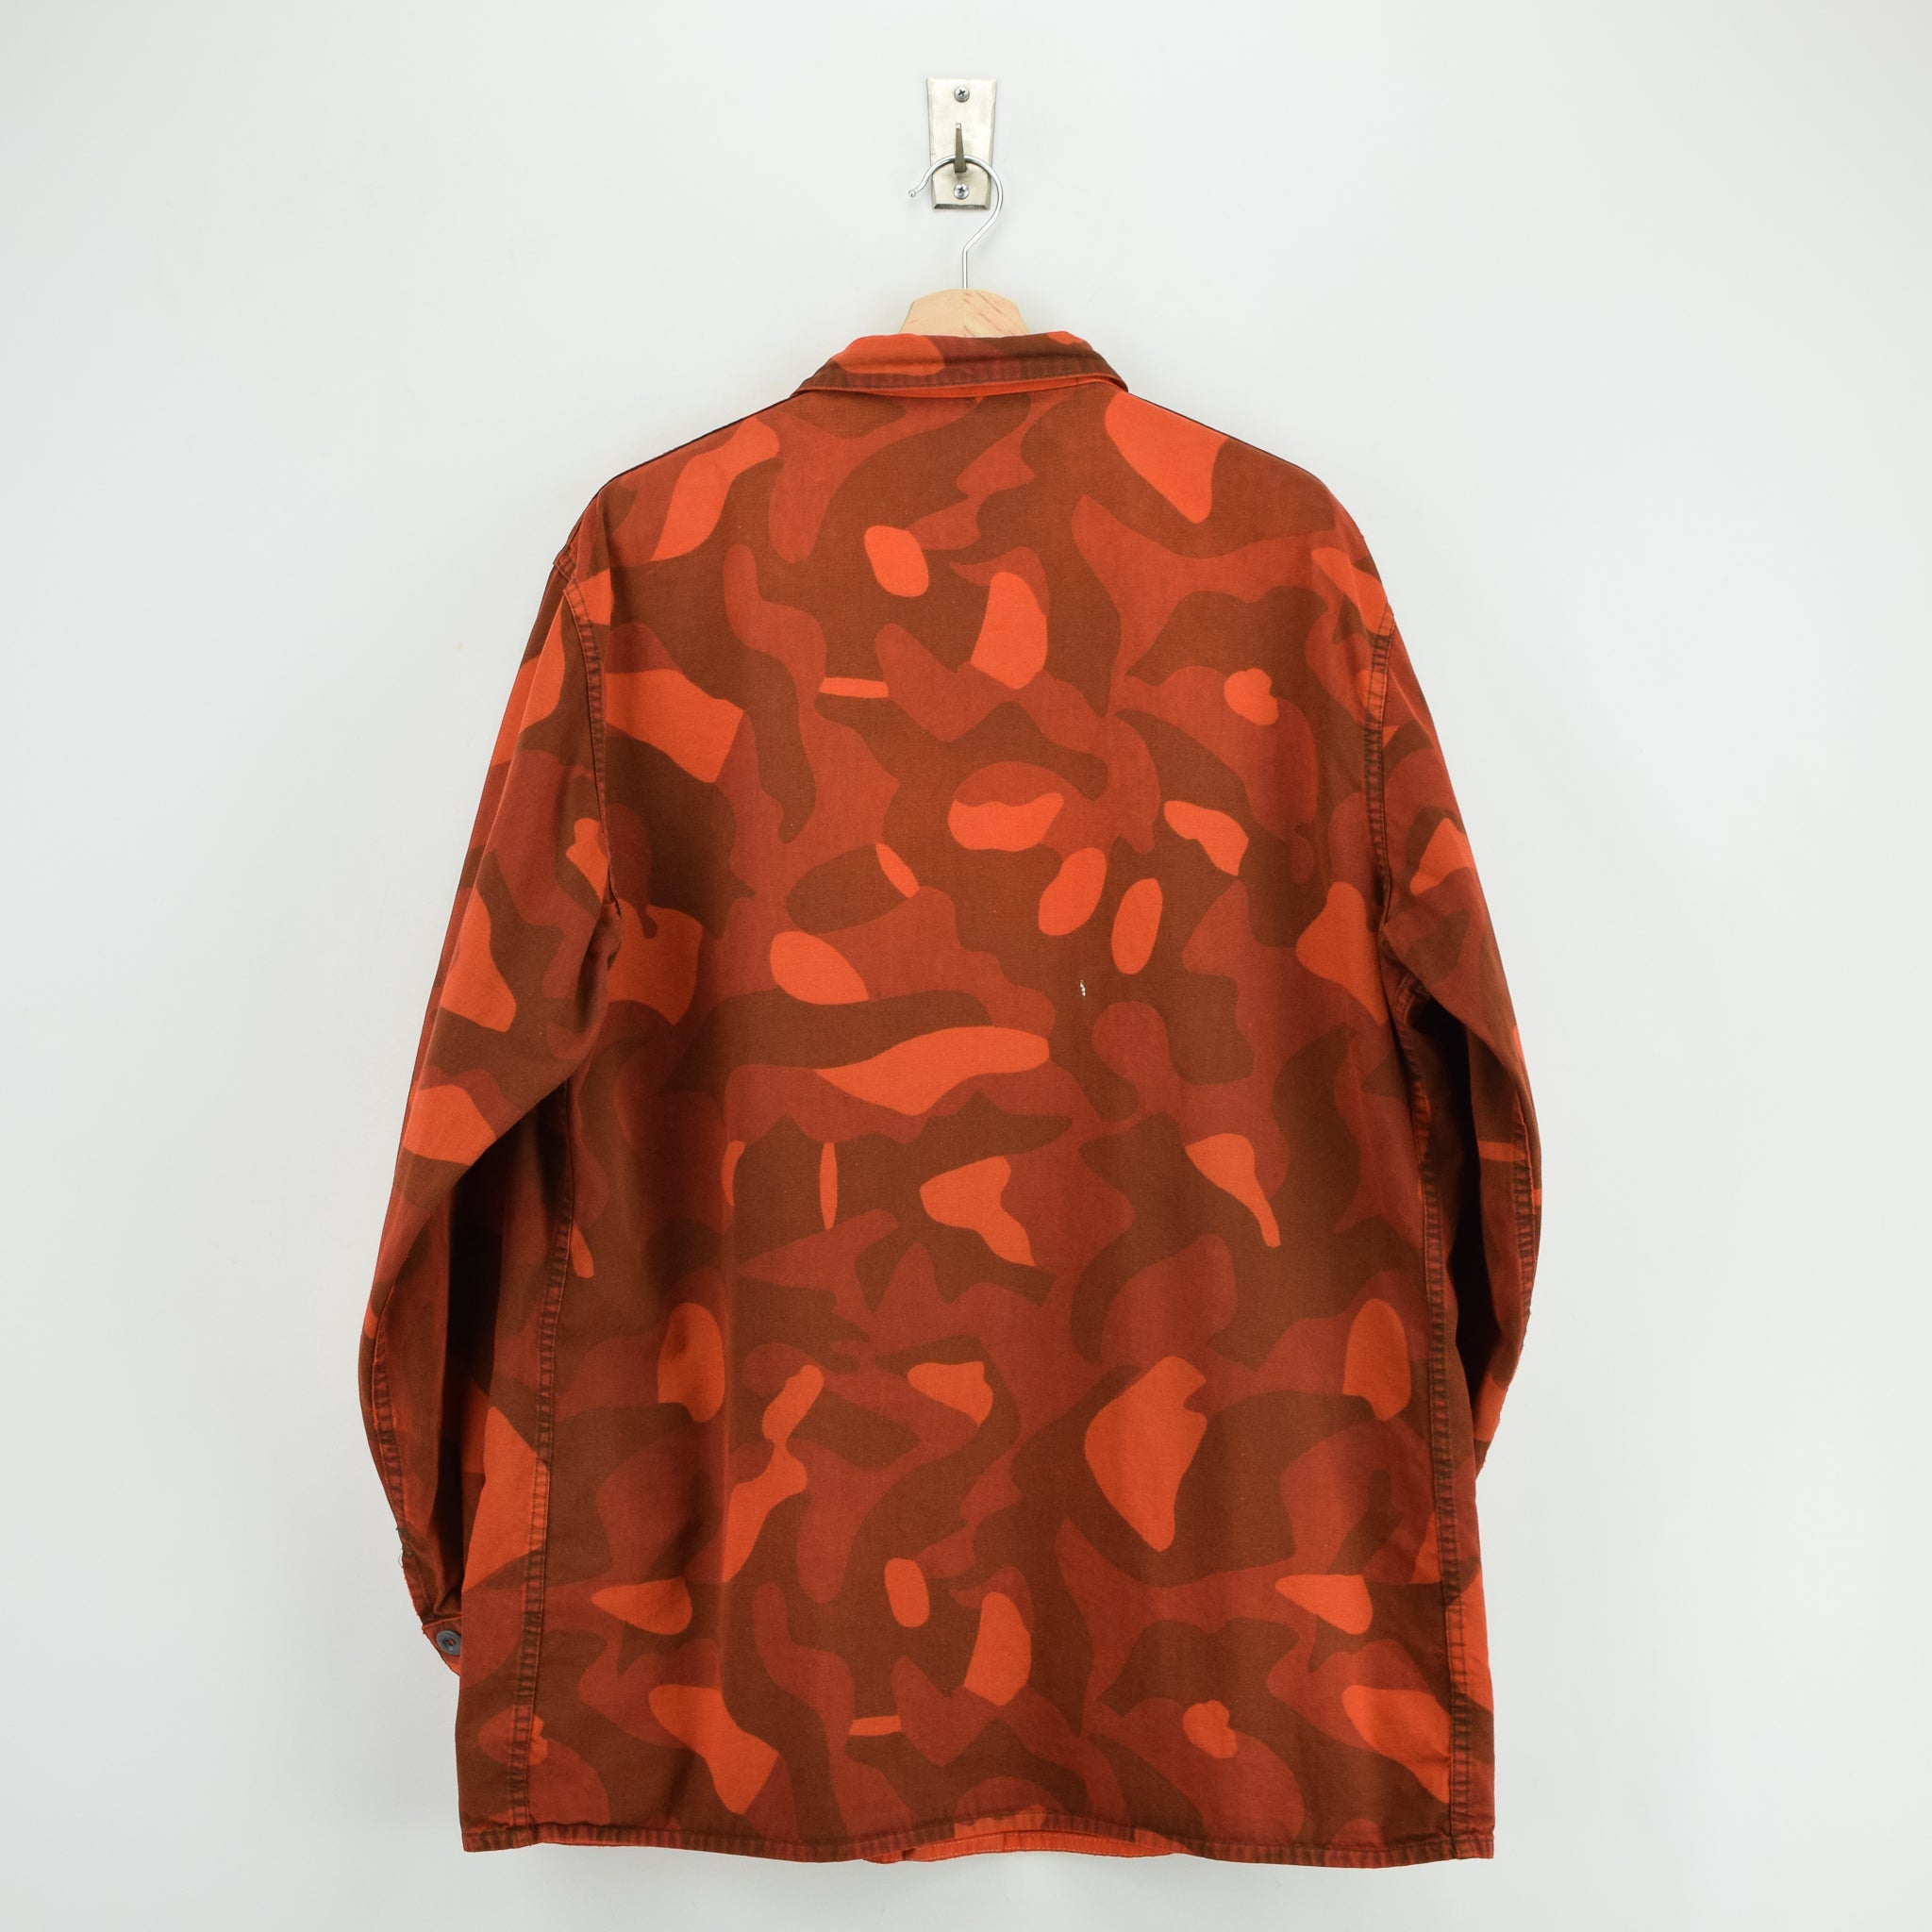 Vintage 80s Military Finnish Army Orange Overdyed Camo Mountain Field Jacket XL back